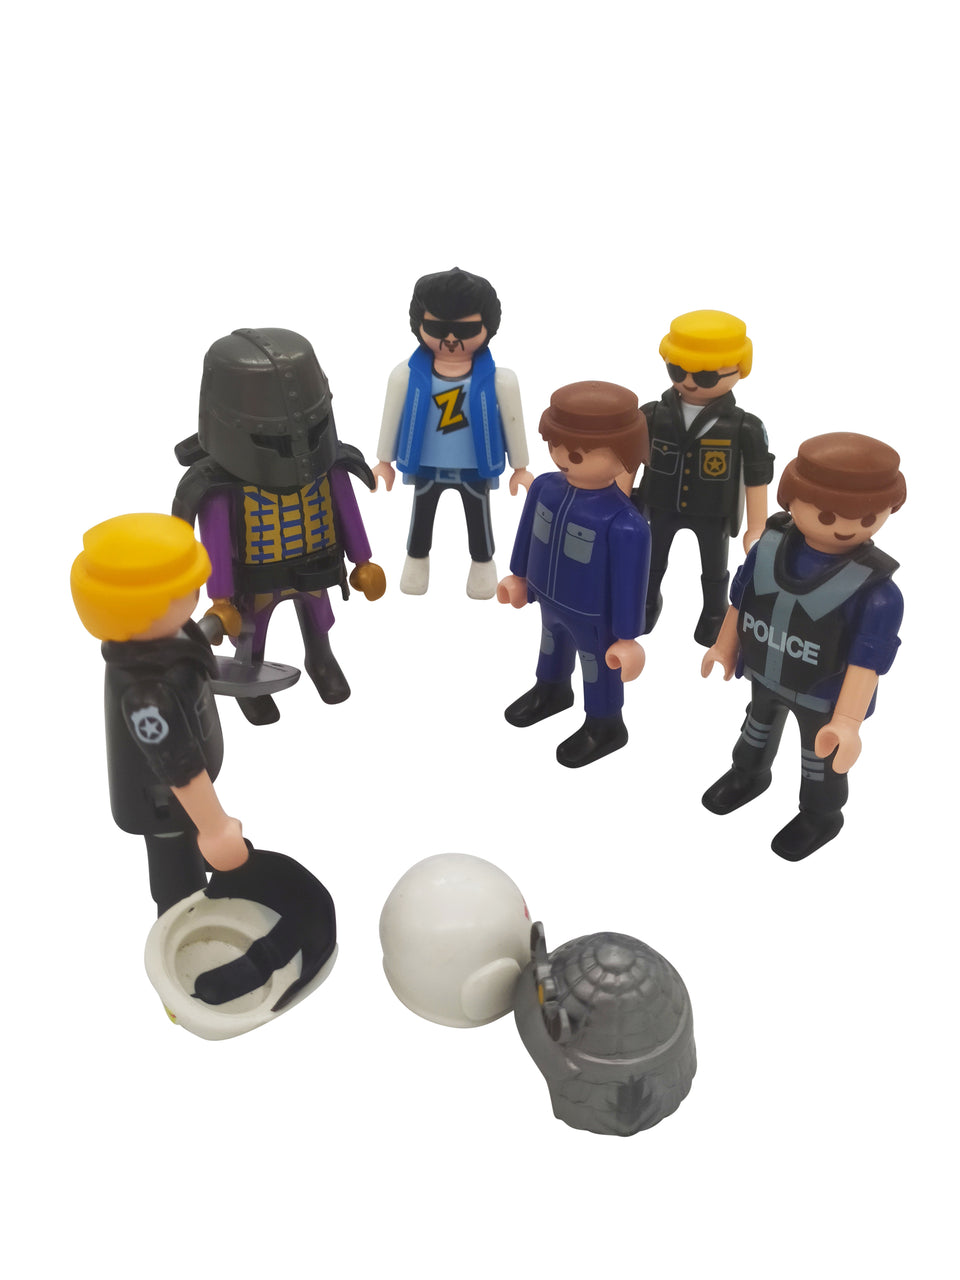 playmobil figures mix of 5 with access